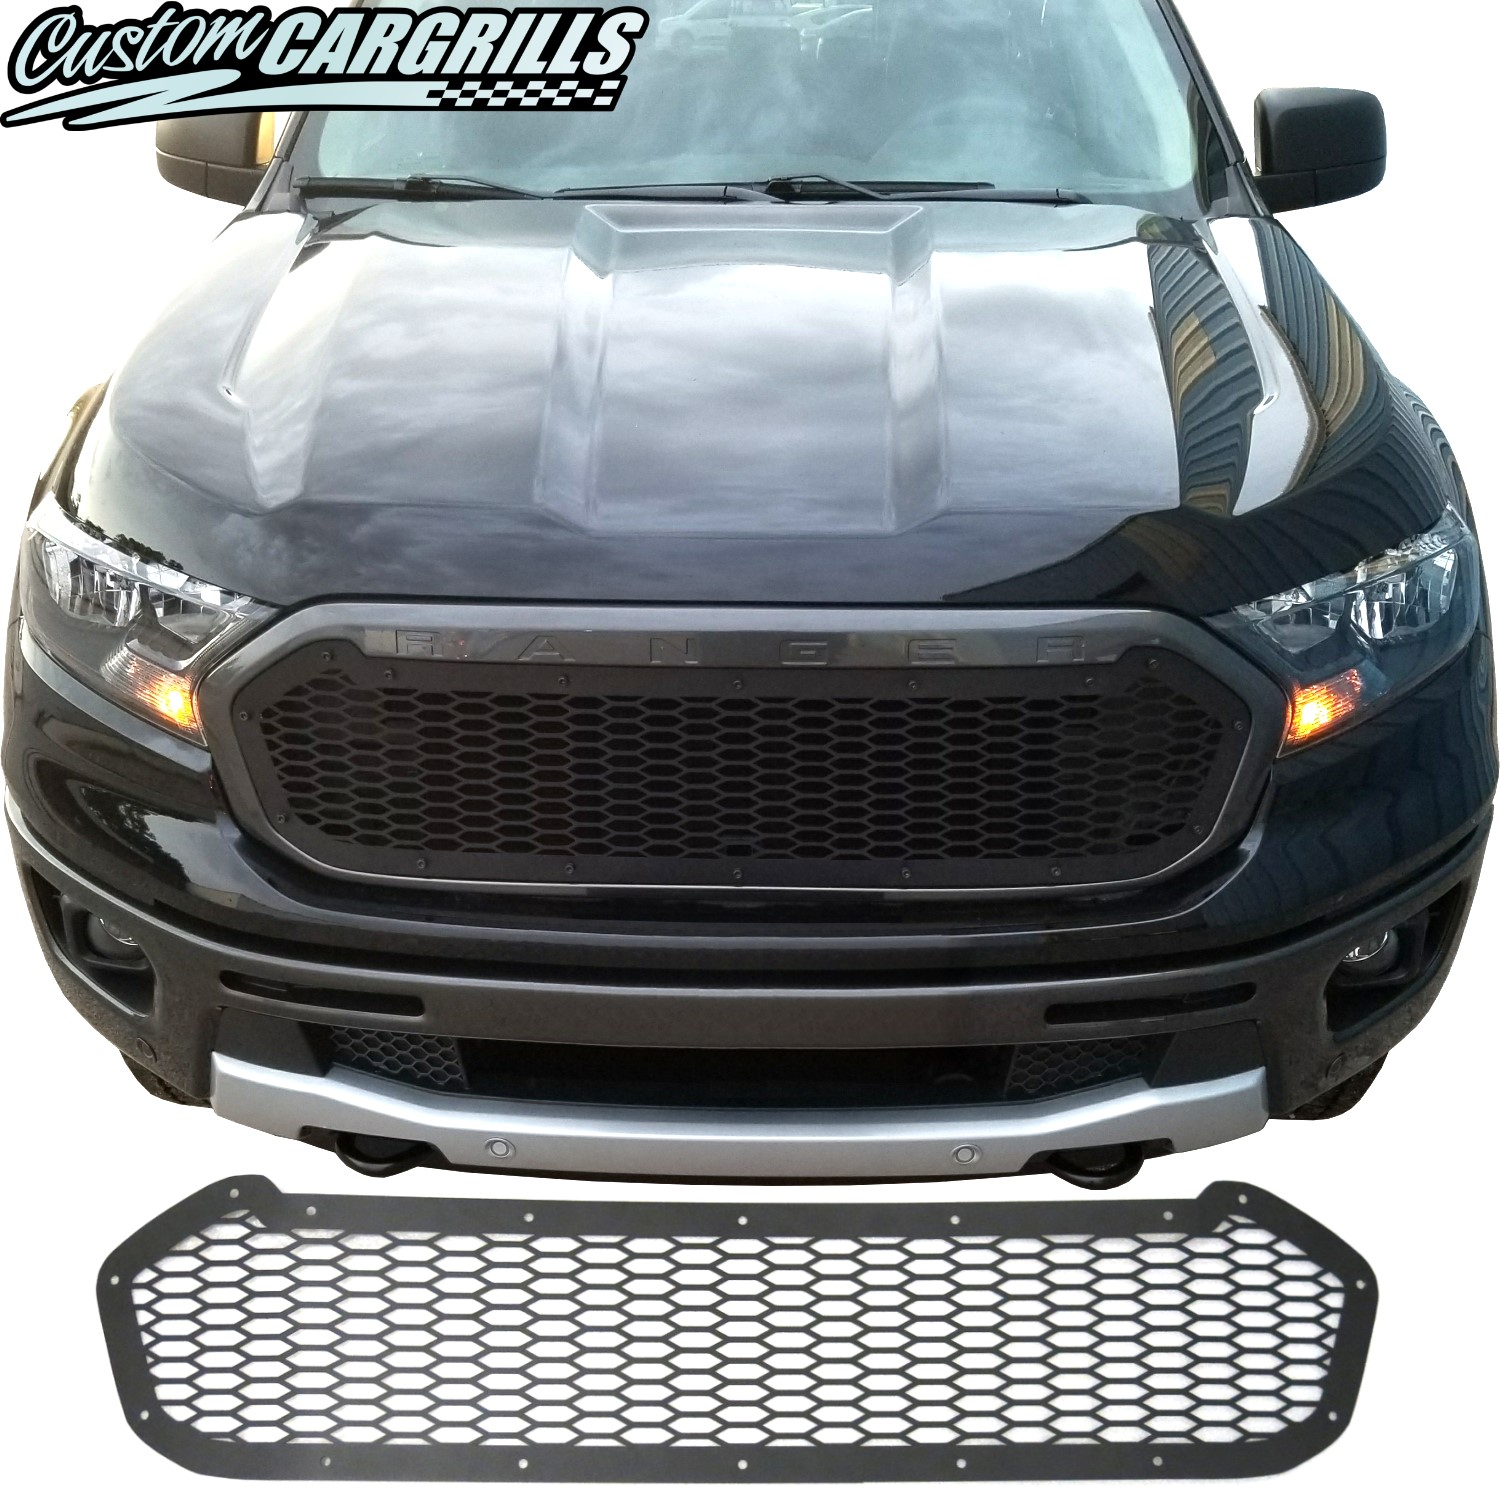 ford ranger mesh grill insert kit  customcargrills